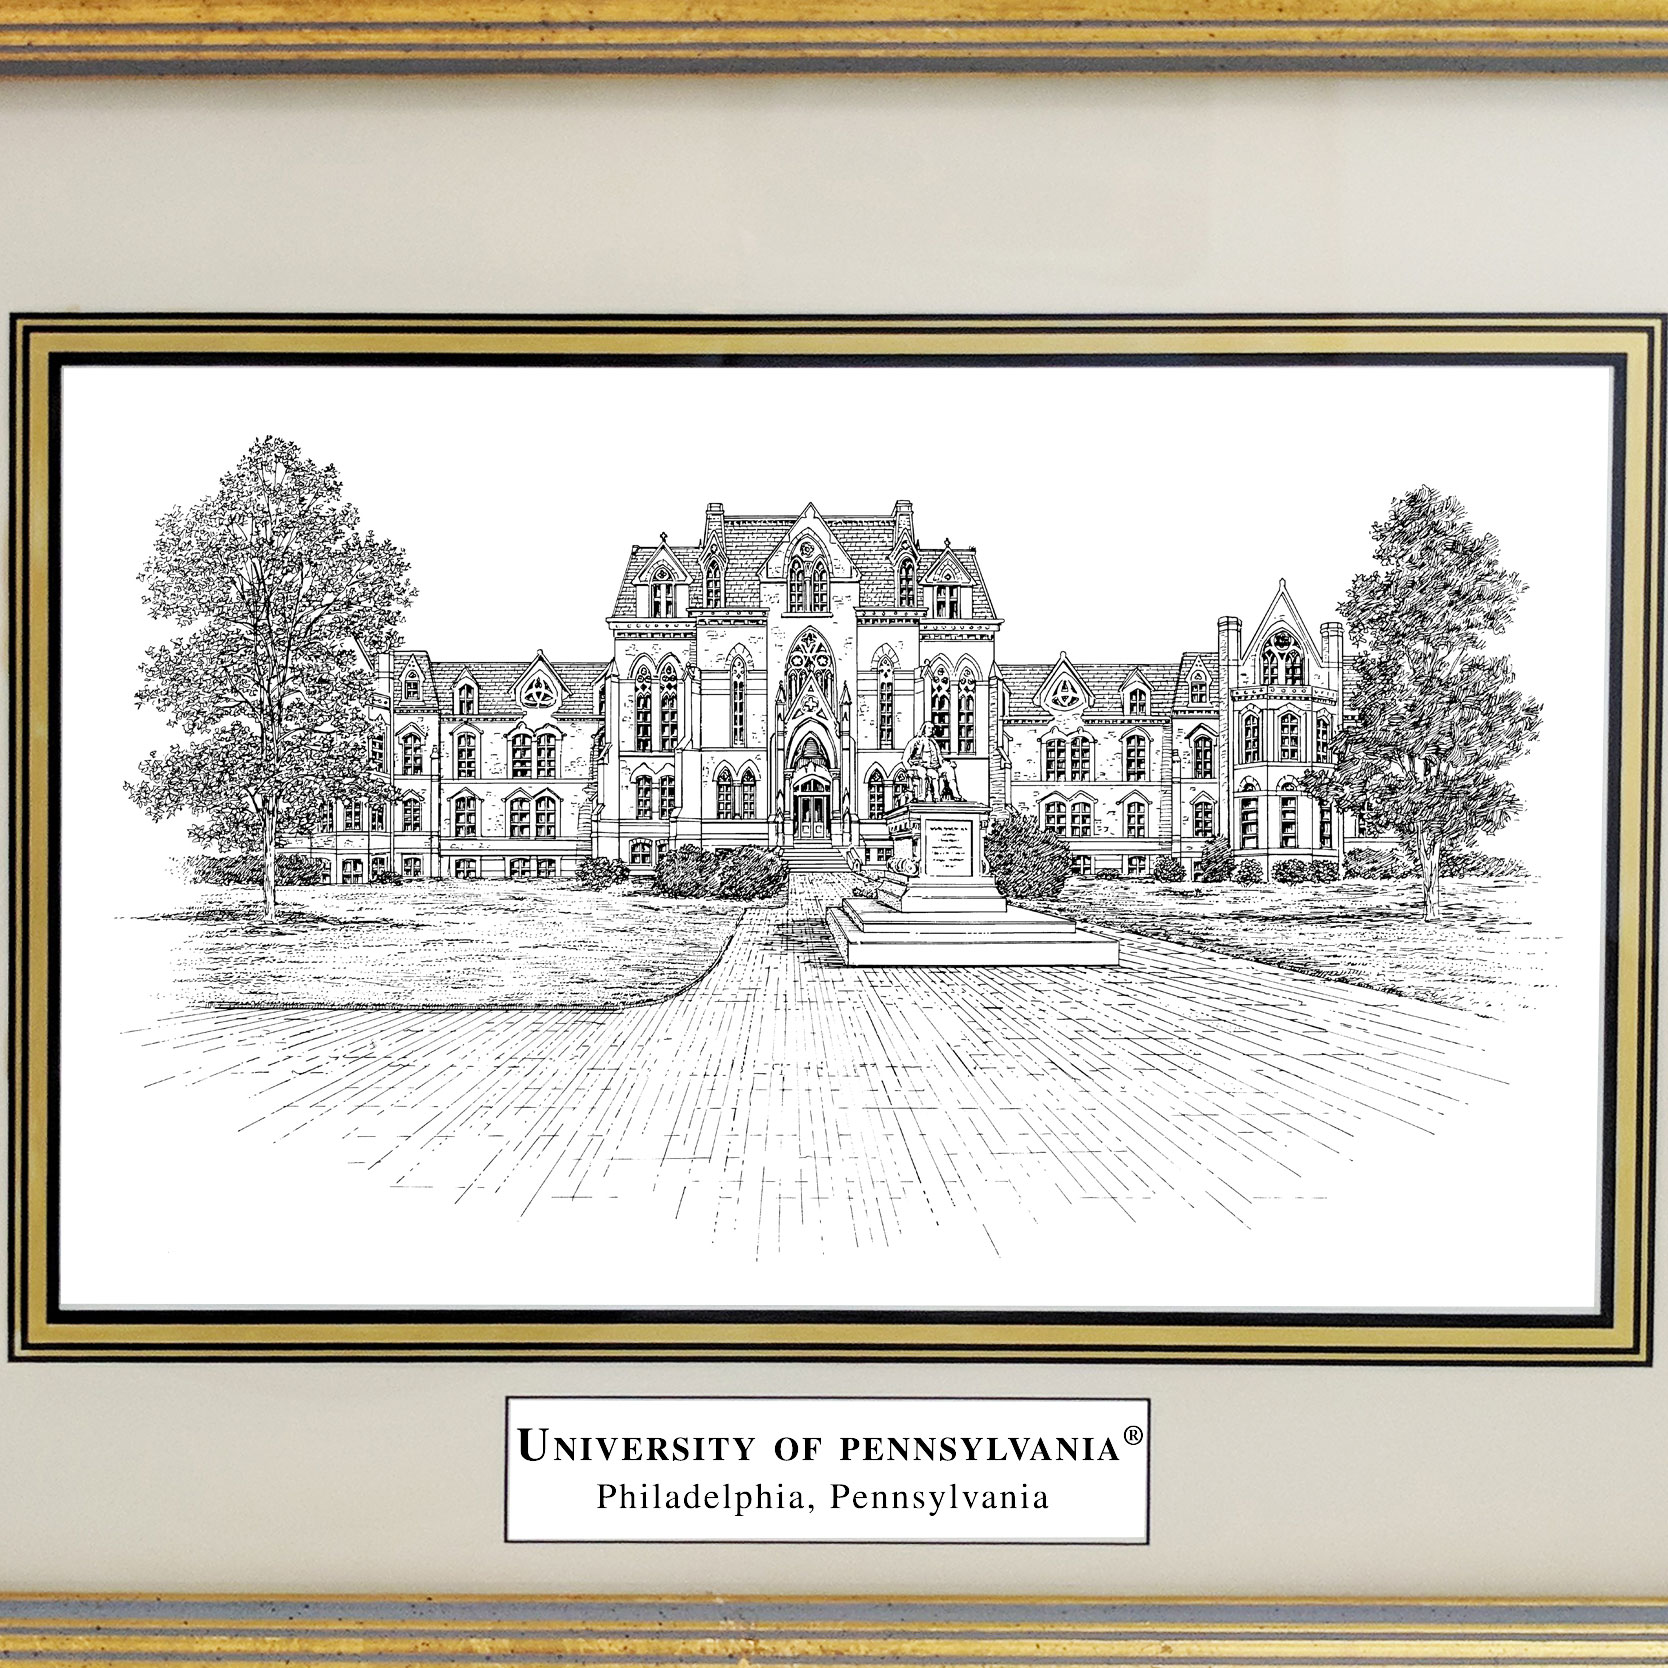 Framed Pen and Ink University of Pennsylvania Print - Image 2